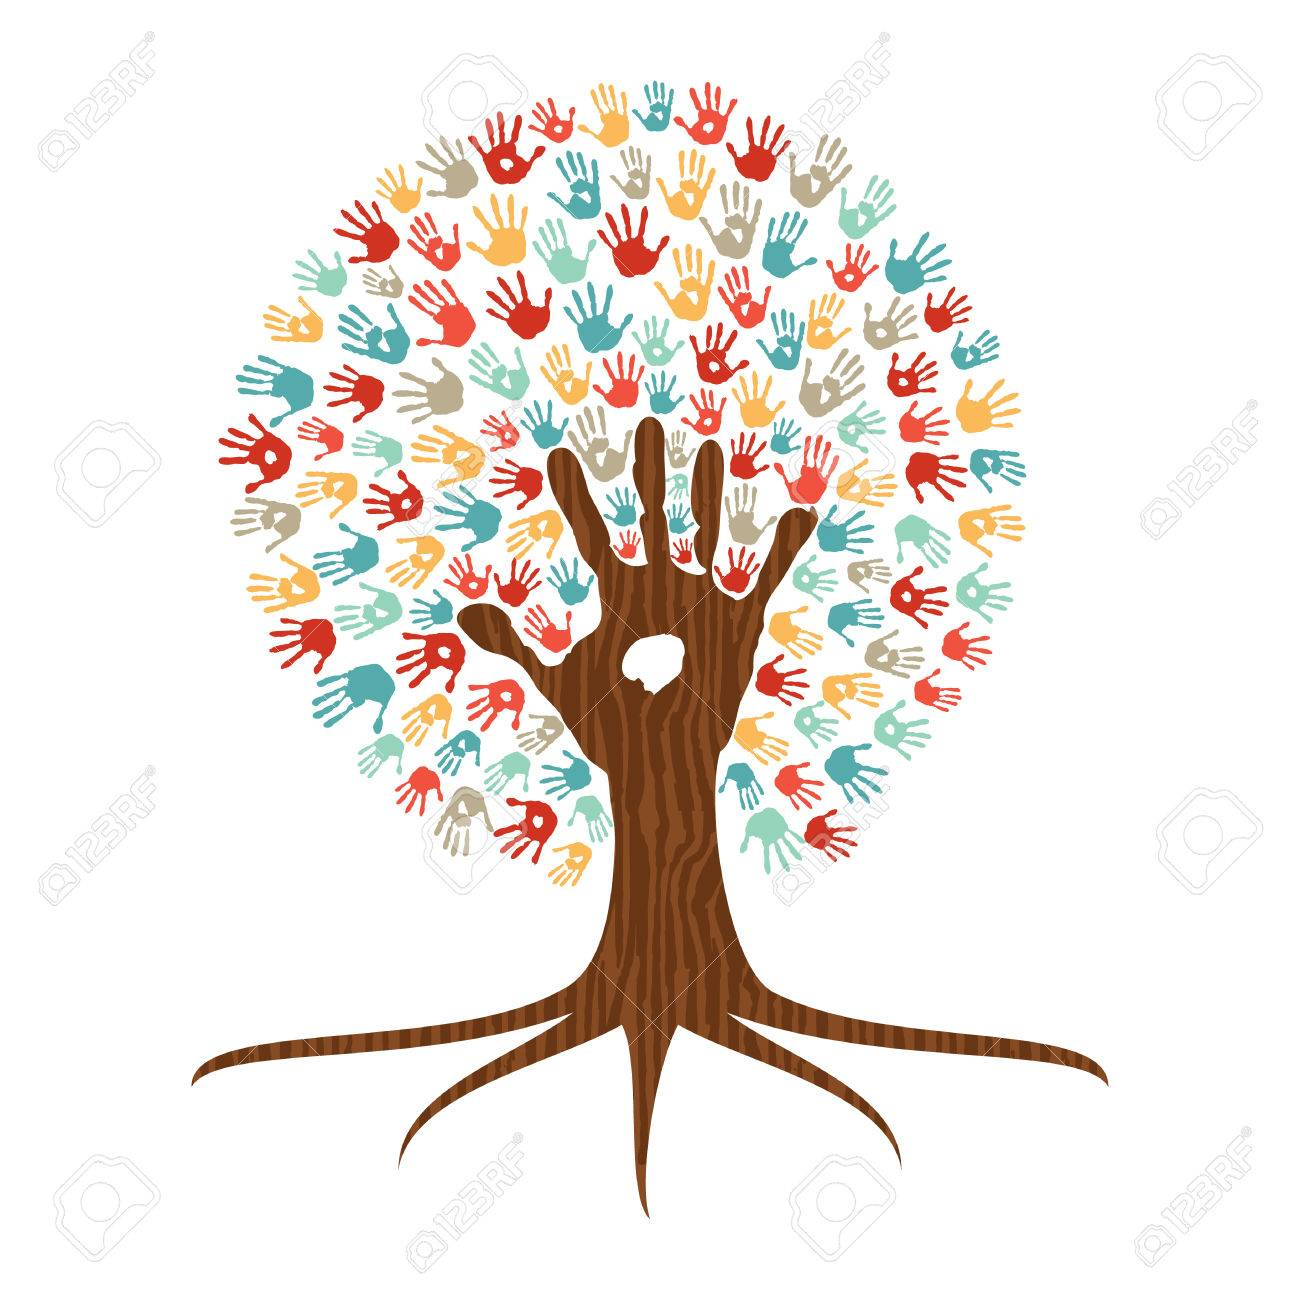 Human handprint multicolor tree with hands of colorful ethnic